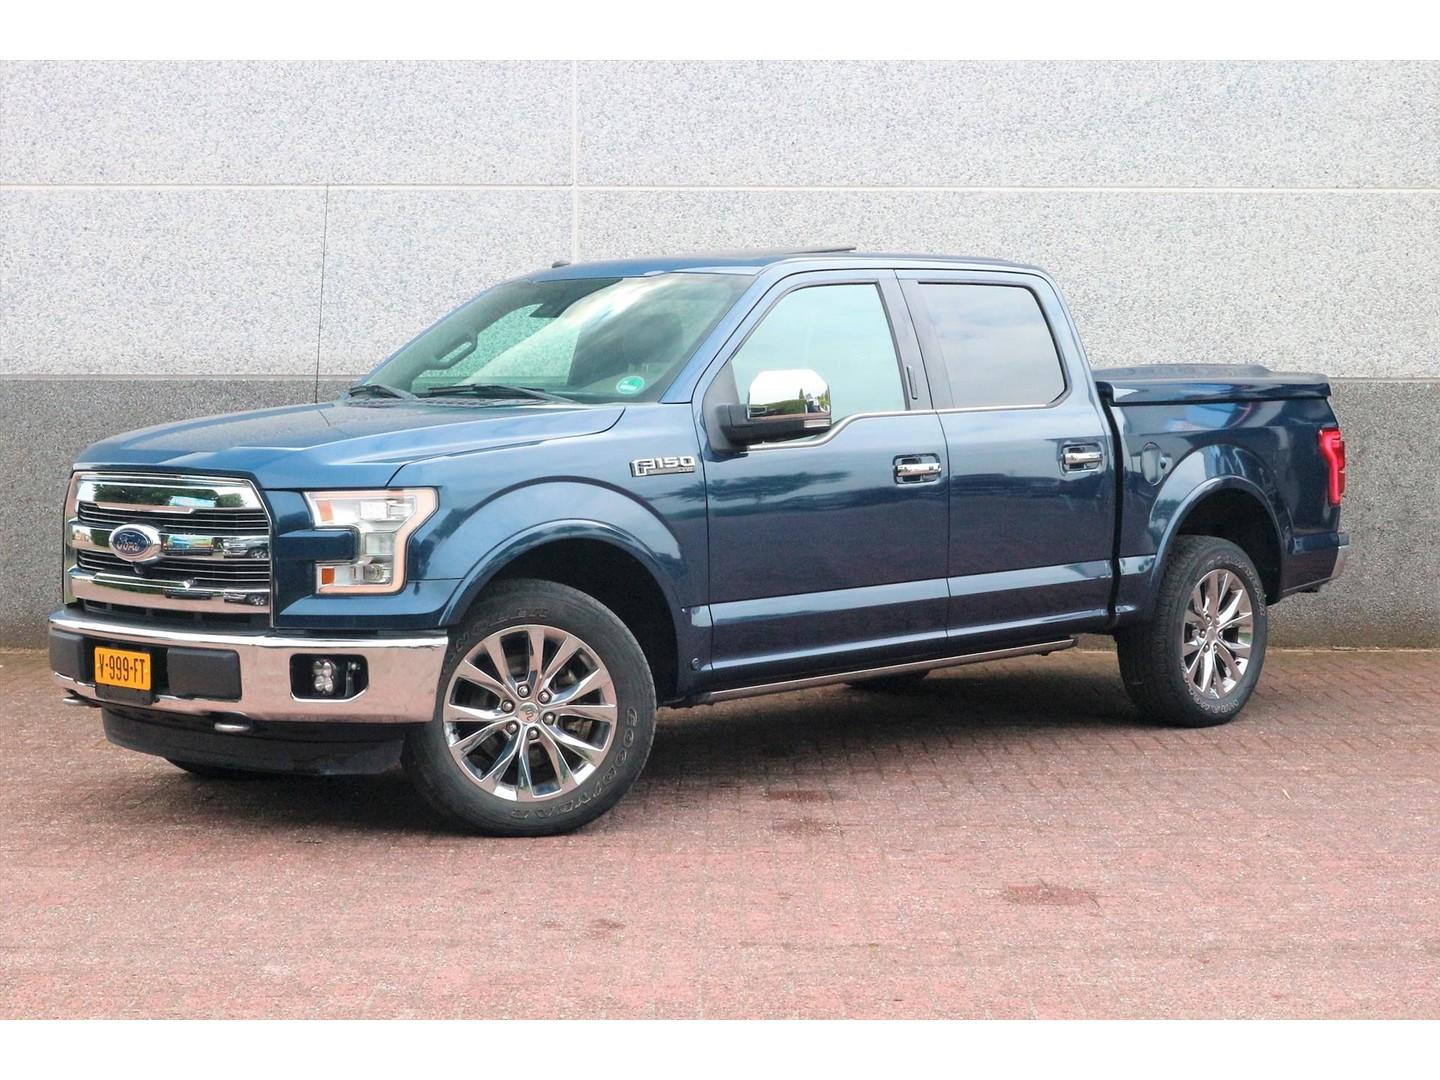 Ford usa F-150 King ranch 3.5l ecoboost crewcab